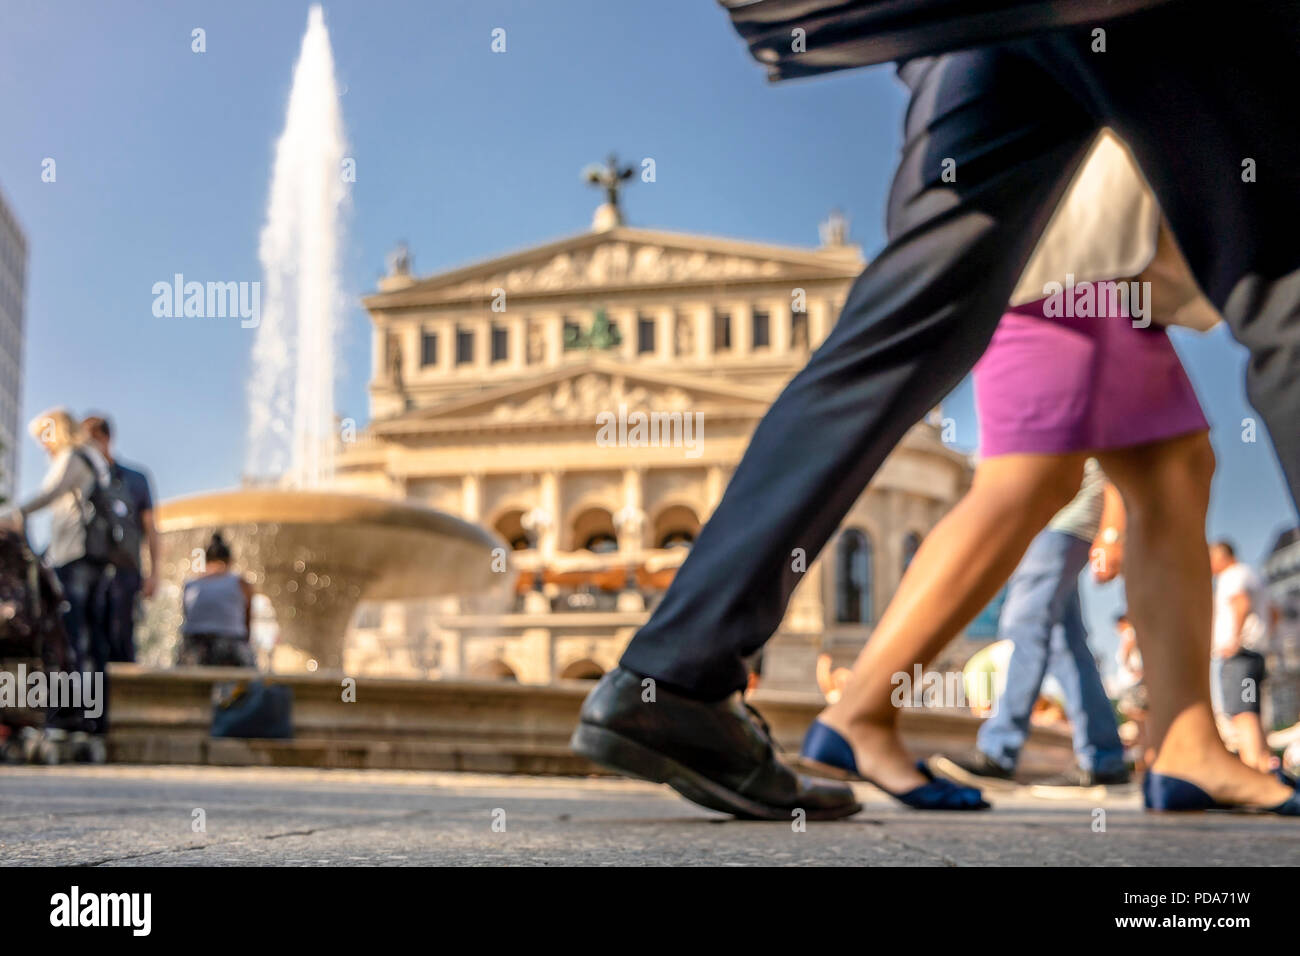 Blurry shot of people walking on the Opernplatz in Frankfurt Germany and looking for refreshment in the water of the fountain. - Stock Image